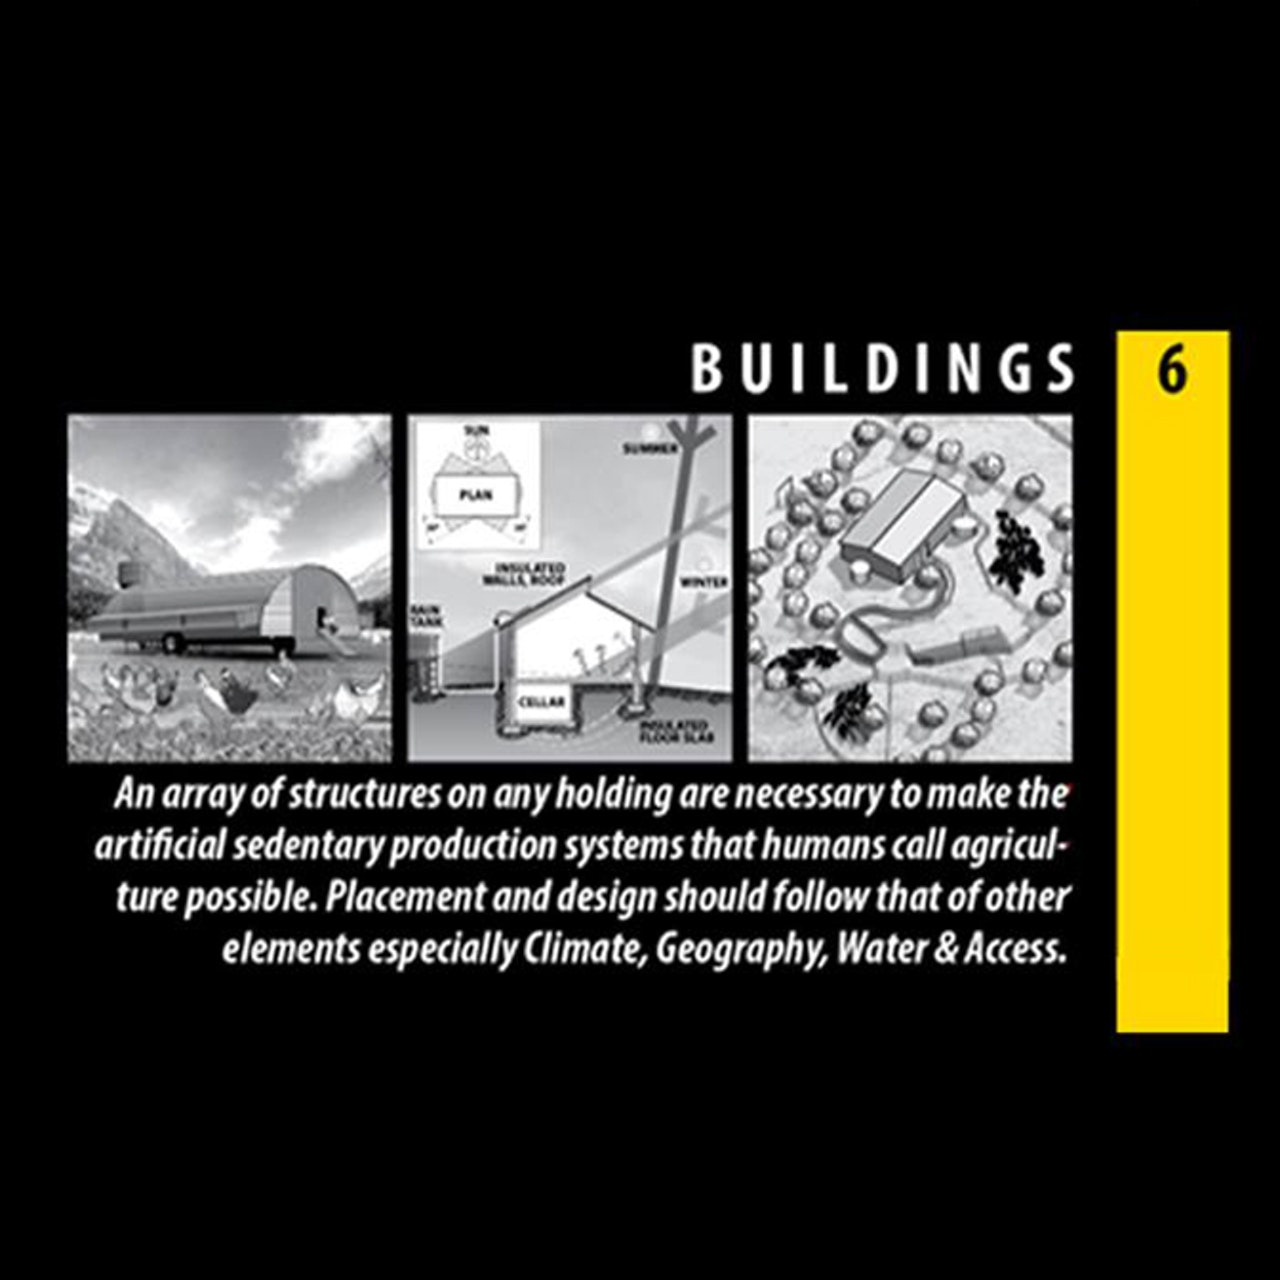 REGRARIANS HANDBOOK - 6. BUILDINGS